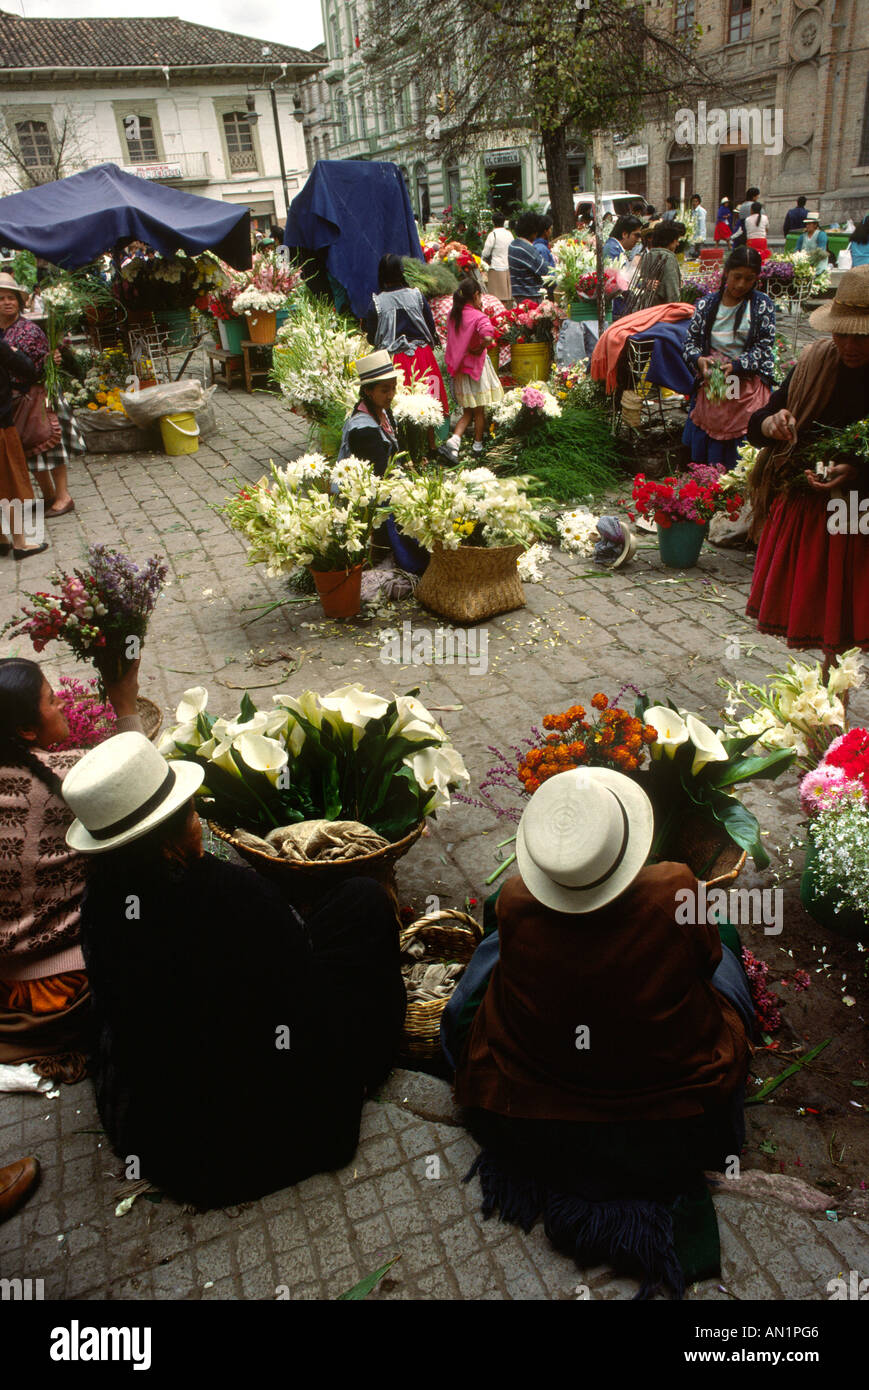 cuenca single girls A place to meet other single expats iam a 55yrold, single, female there are now  many single females travelling and living in ecuador especially in cuenca.